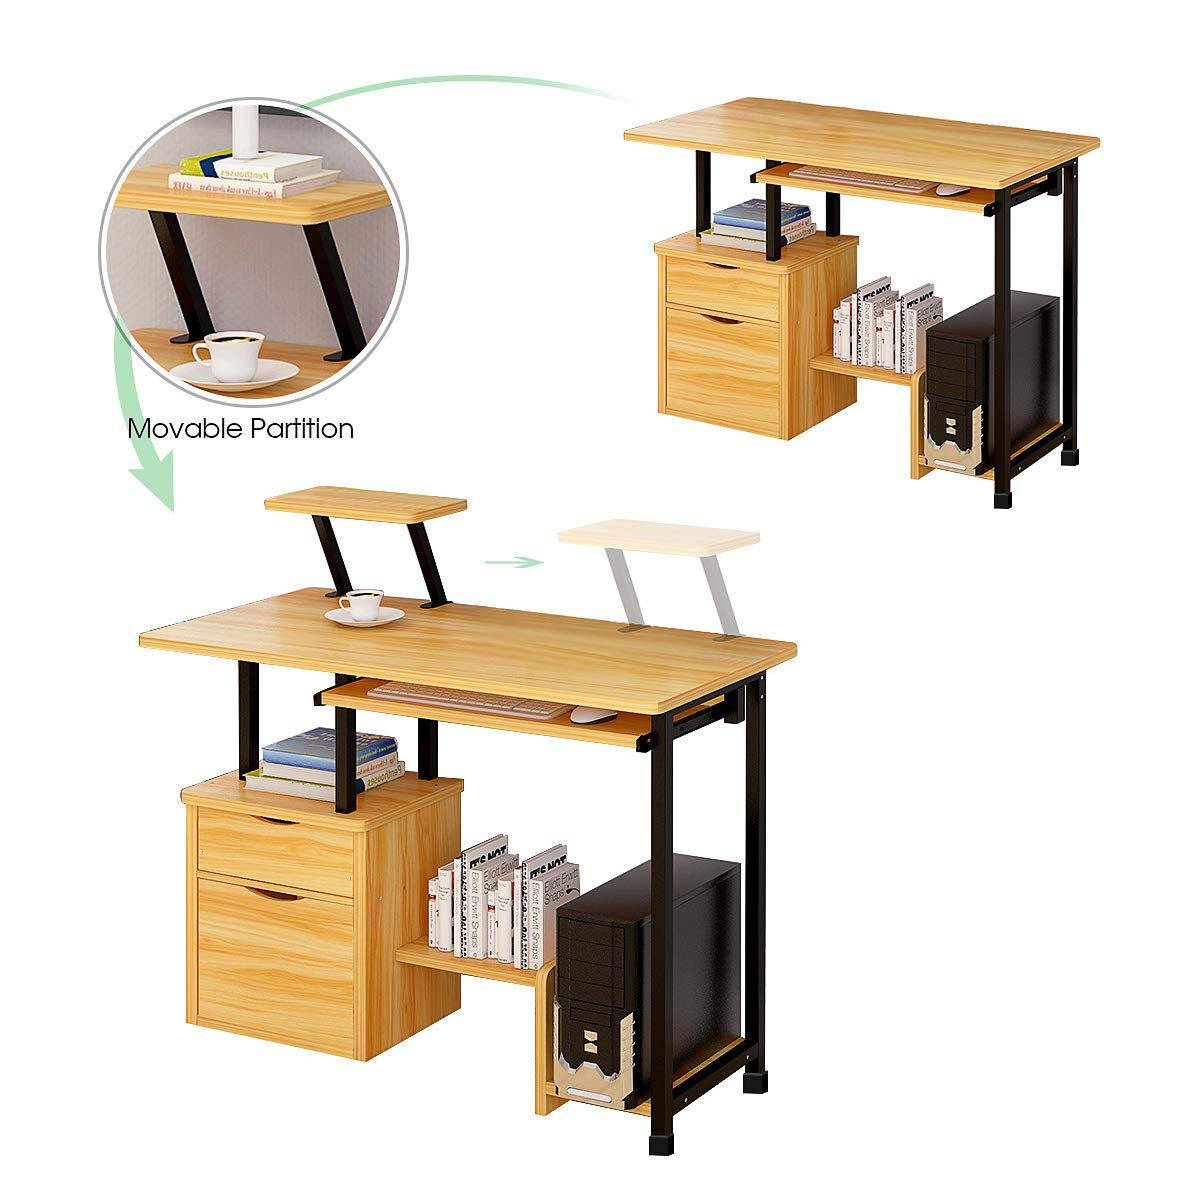 Computer Desk,Laptop Desk Modern Style Writing Study Table Home Office Desk Compact Gaming Desk Multipurpose PC Workstation Steel Frame and Bookshelf for Home Office with Keyboard Tray & CPU Holder by Suninhome (Image #2)